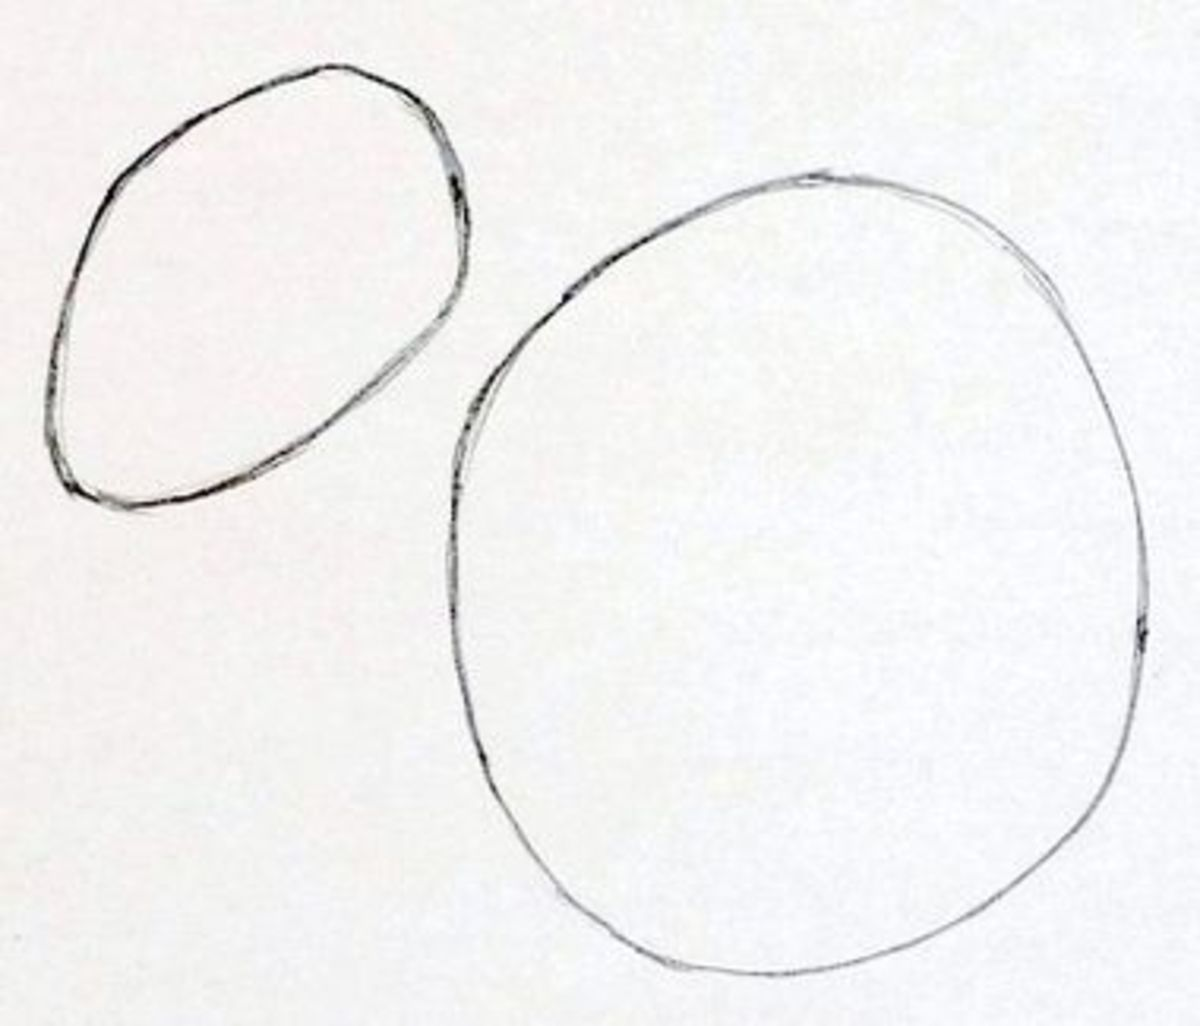 Step 1: You'll start with two circles. They are going to be squirrel's head and squirrel's body.